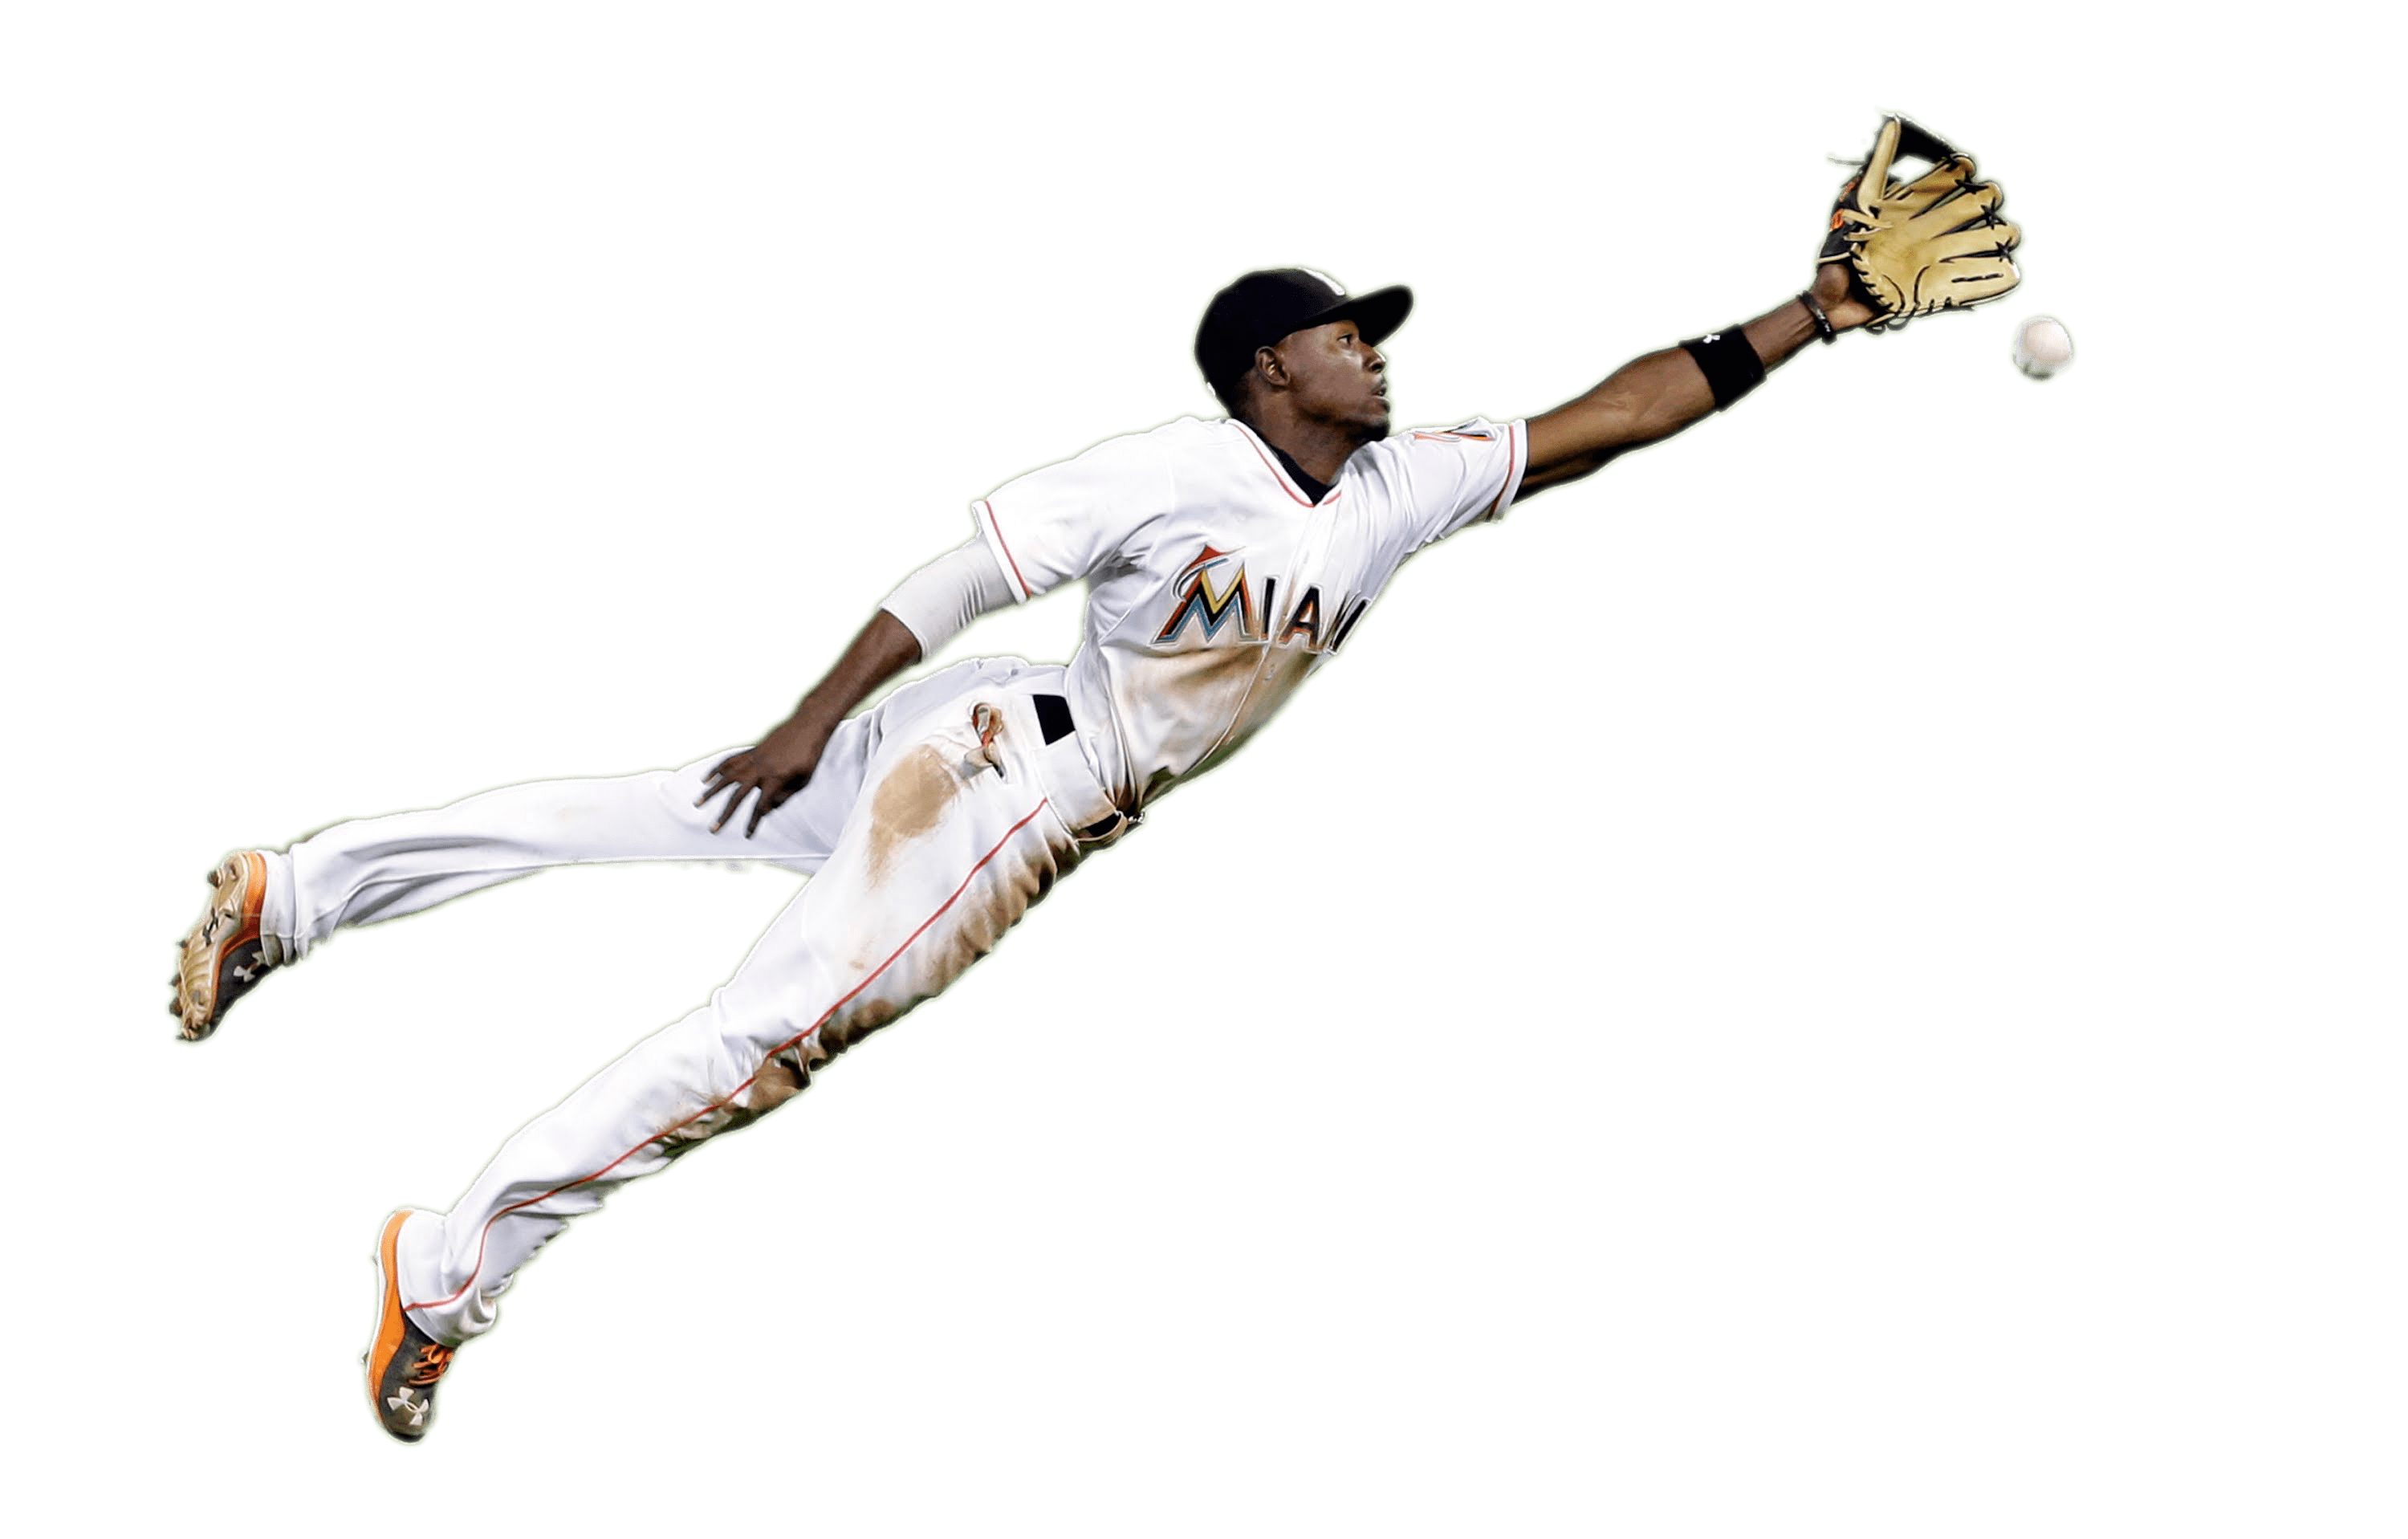 Baseball player throwing a ball clipart image freeuse library Baseball PNG Transparent Images (63+) image freeuse library